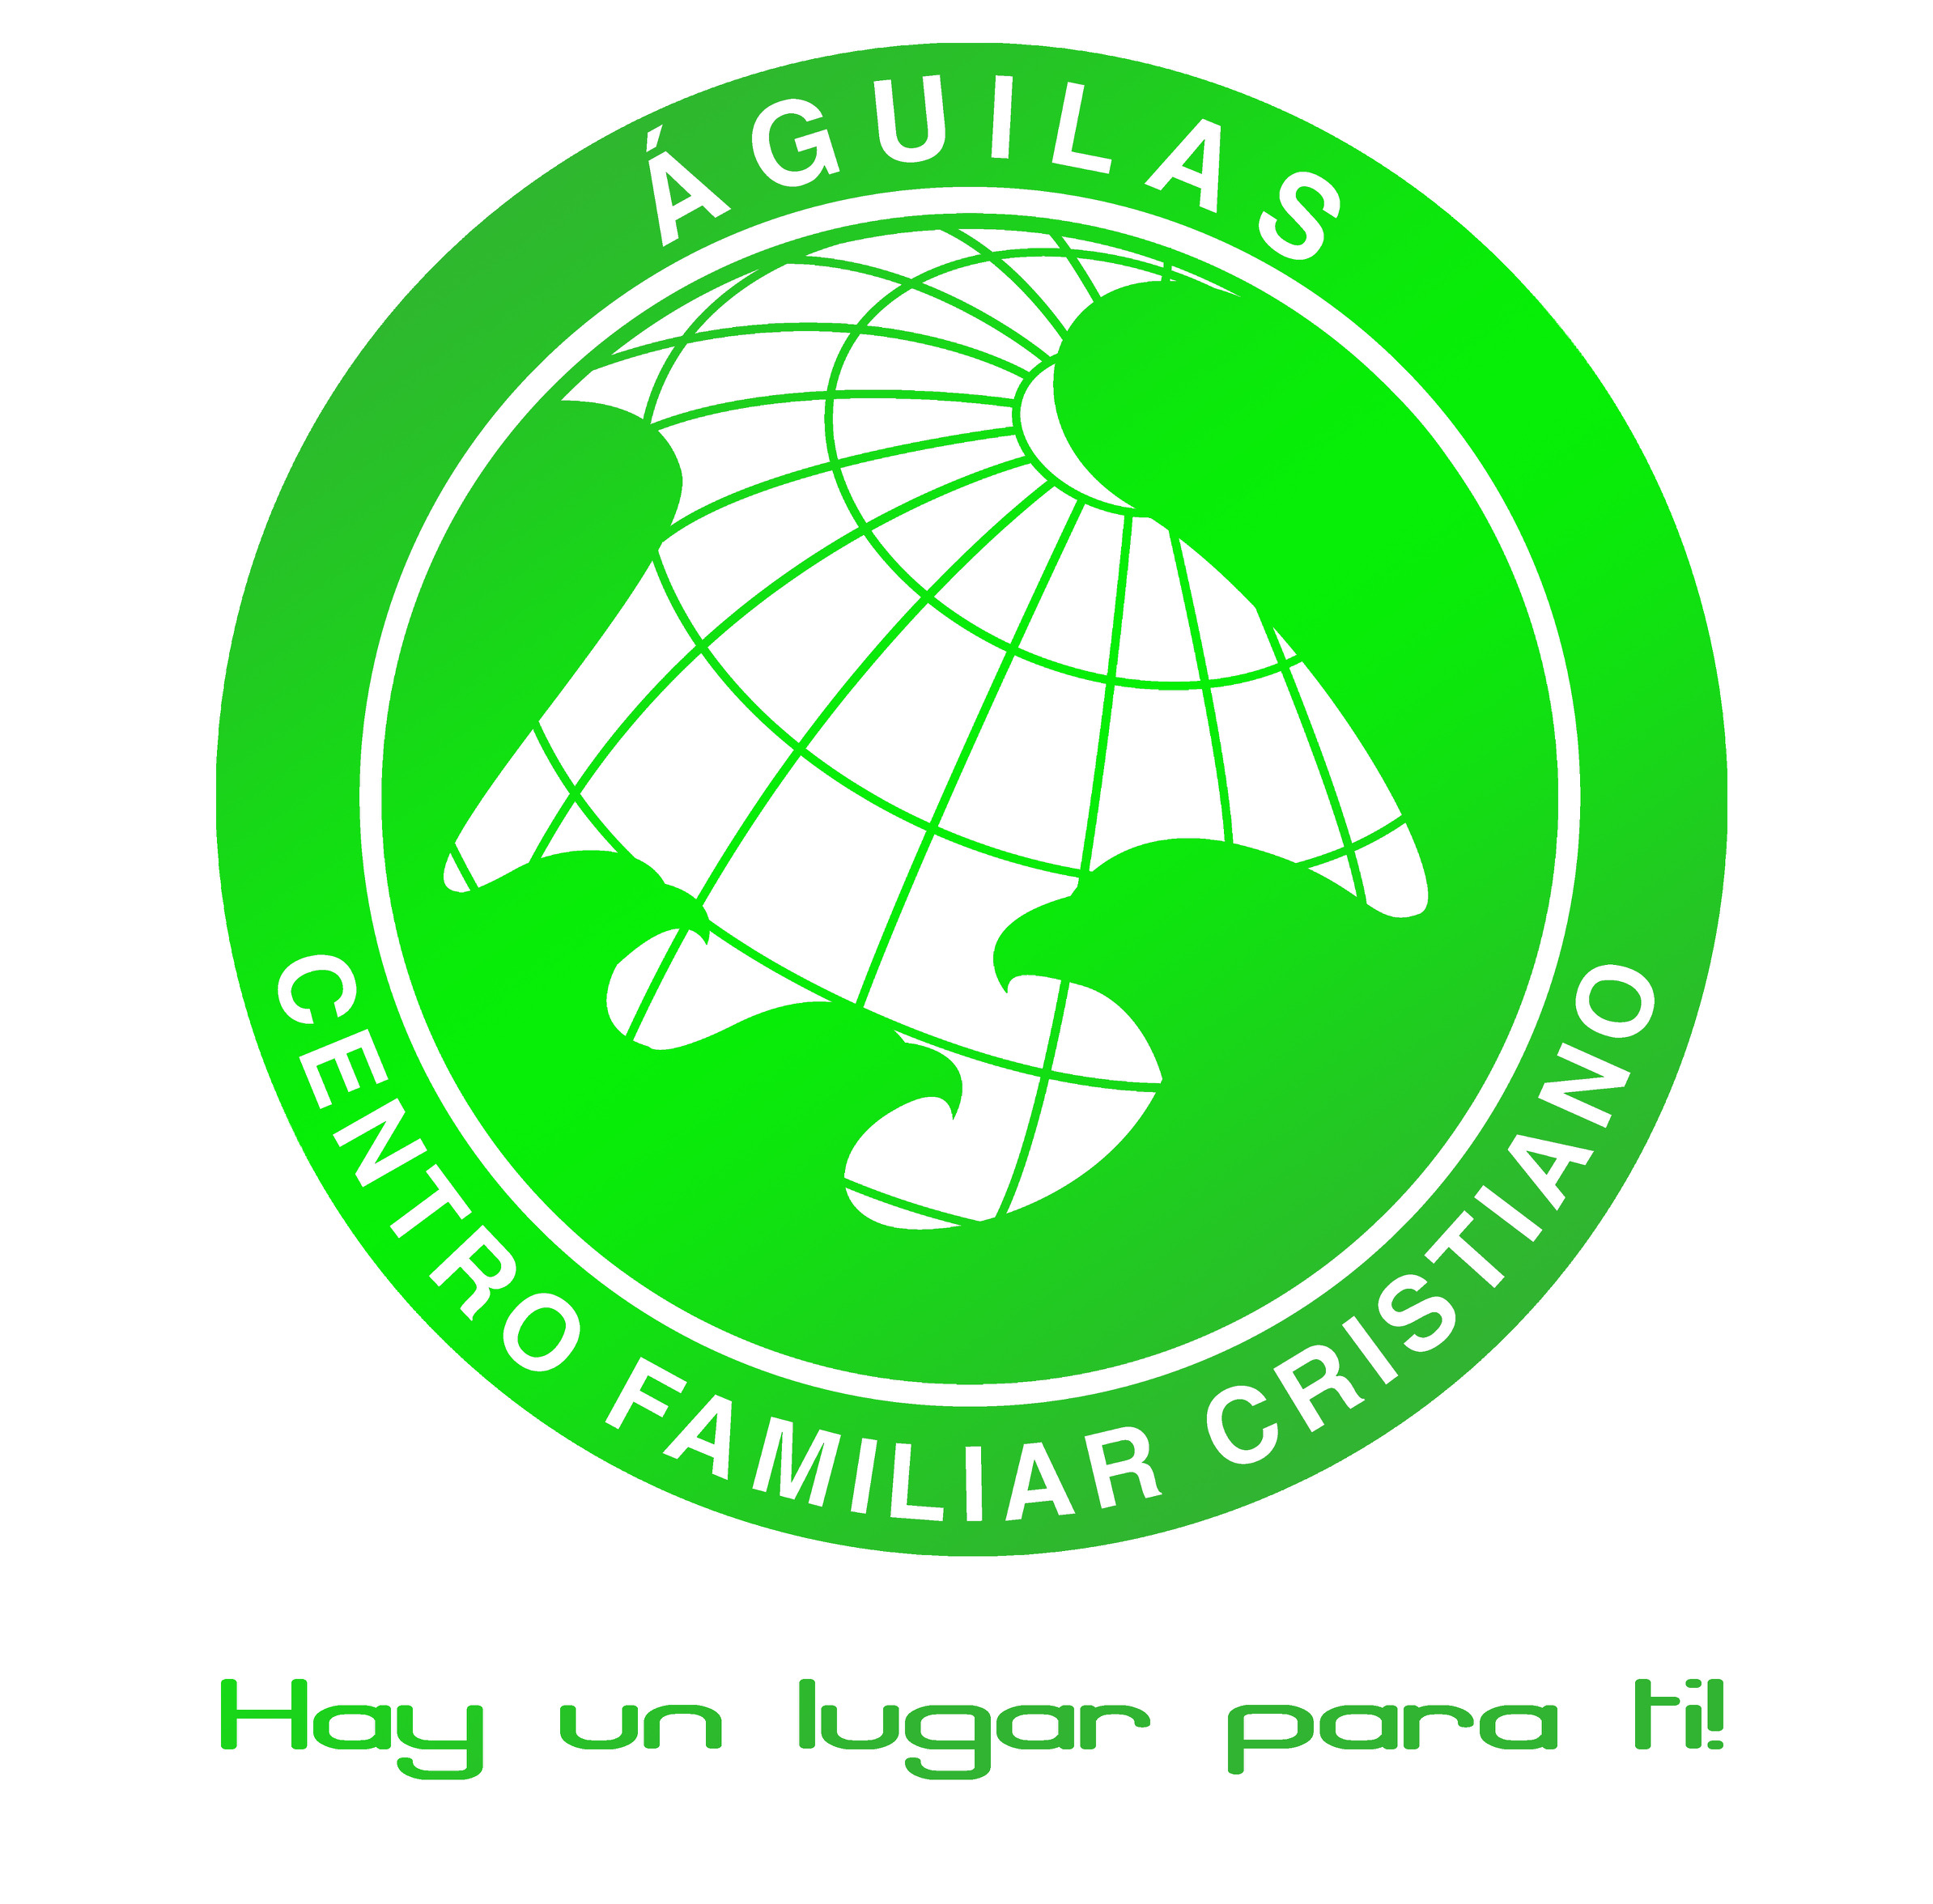 AGUILAS CENTRO FAMILIAR CRISTIANO - RICHMOND  | HAY UN LIGAR PARA TU - THERE IS A PLACE FOR YOU